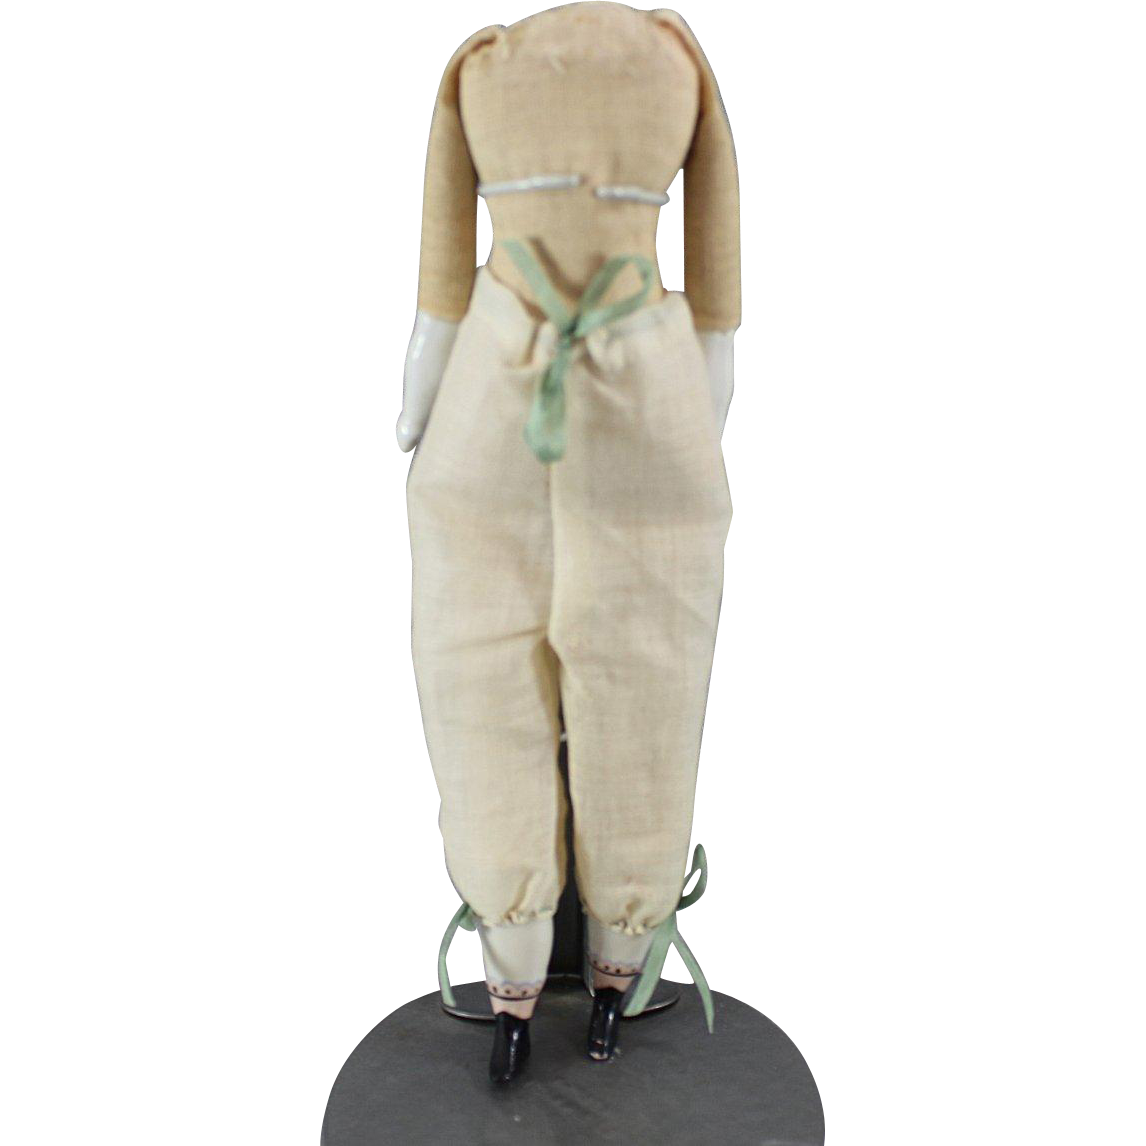 Antique Doll Body China Limbs 9.5 Inches with Pantaloons